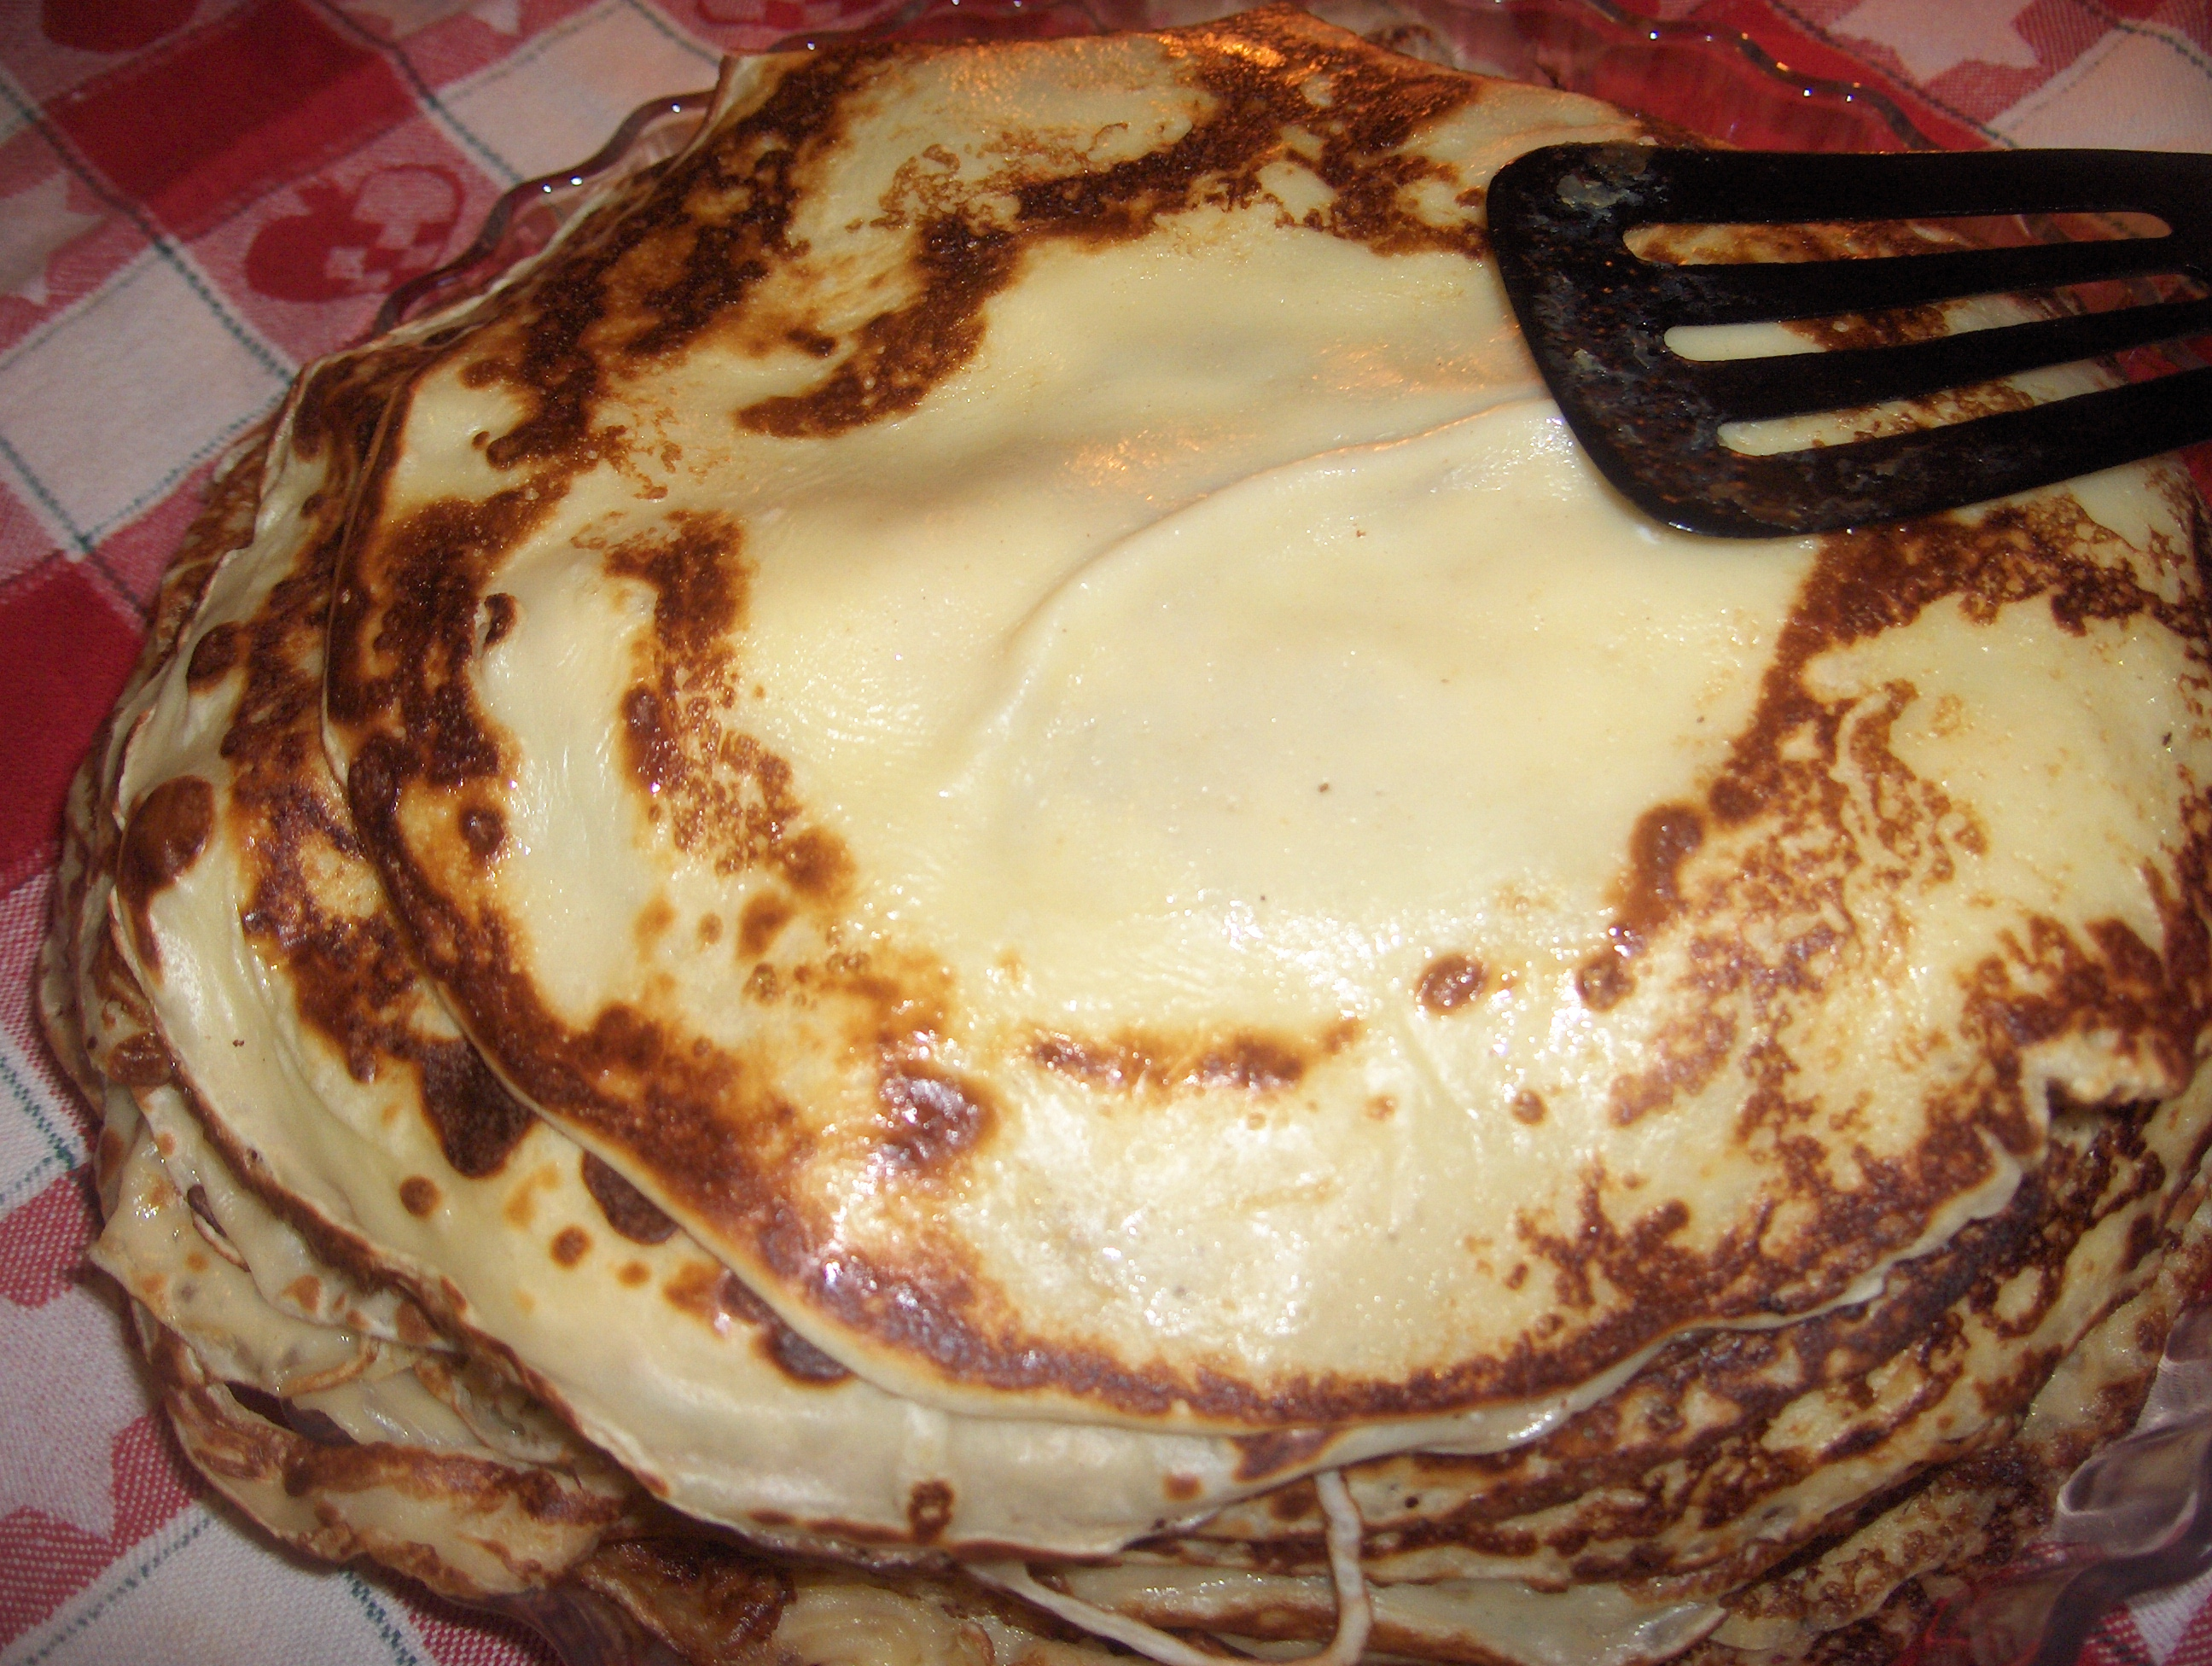 Homemade pancakes tips for delicious homemade pancakes recipes a little sugar free syrup and a medley of fruit make pancake healthy and tasty meal for anyone who doesnt want to much of sugary things ccuart Images